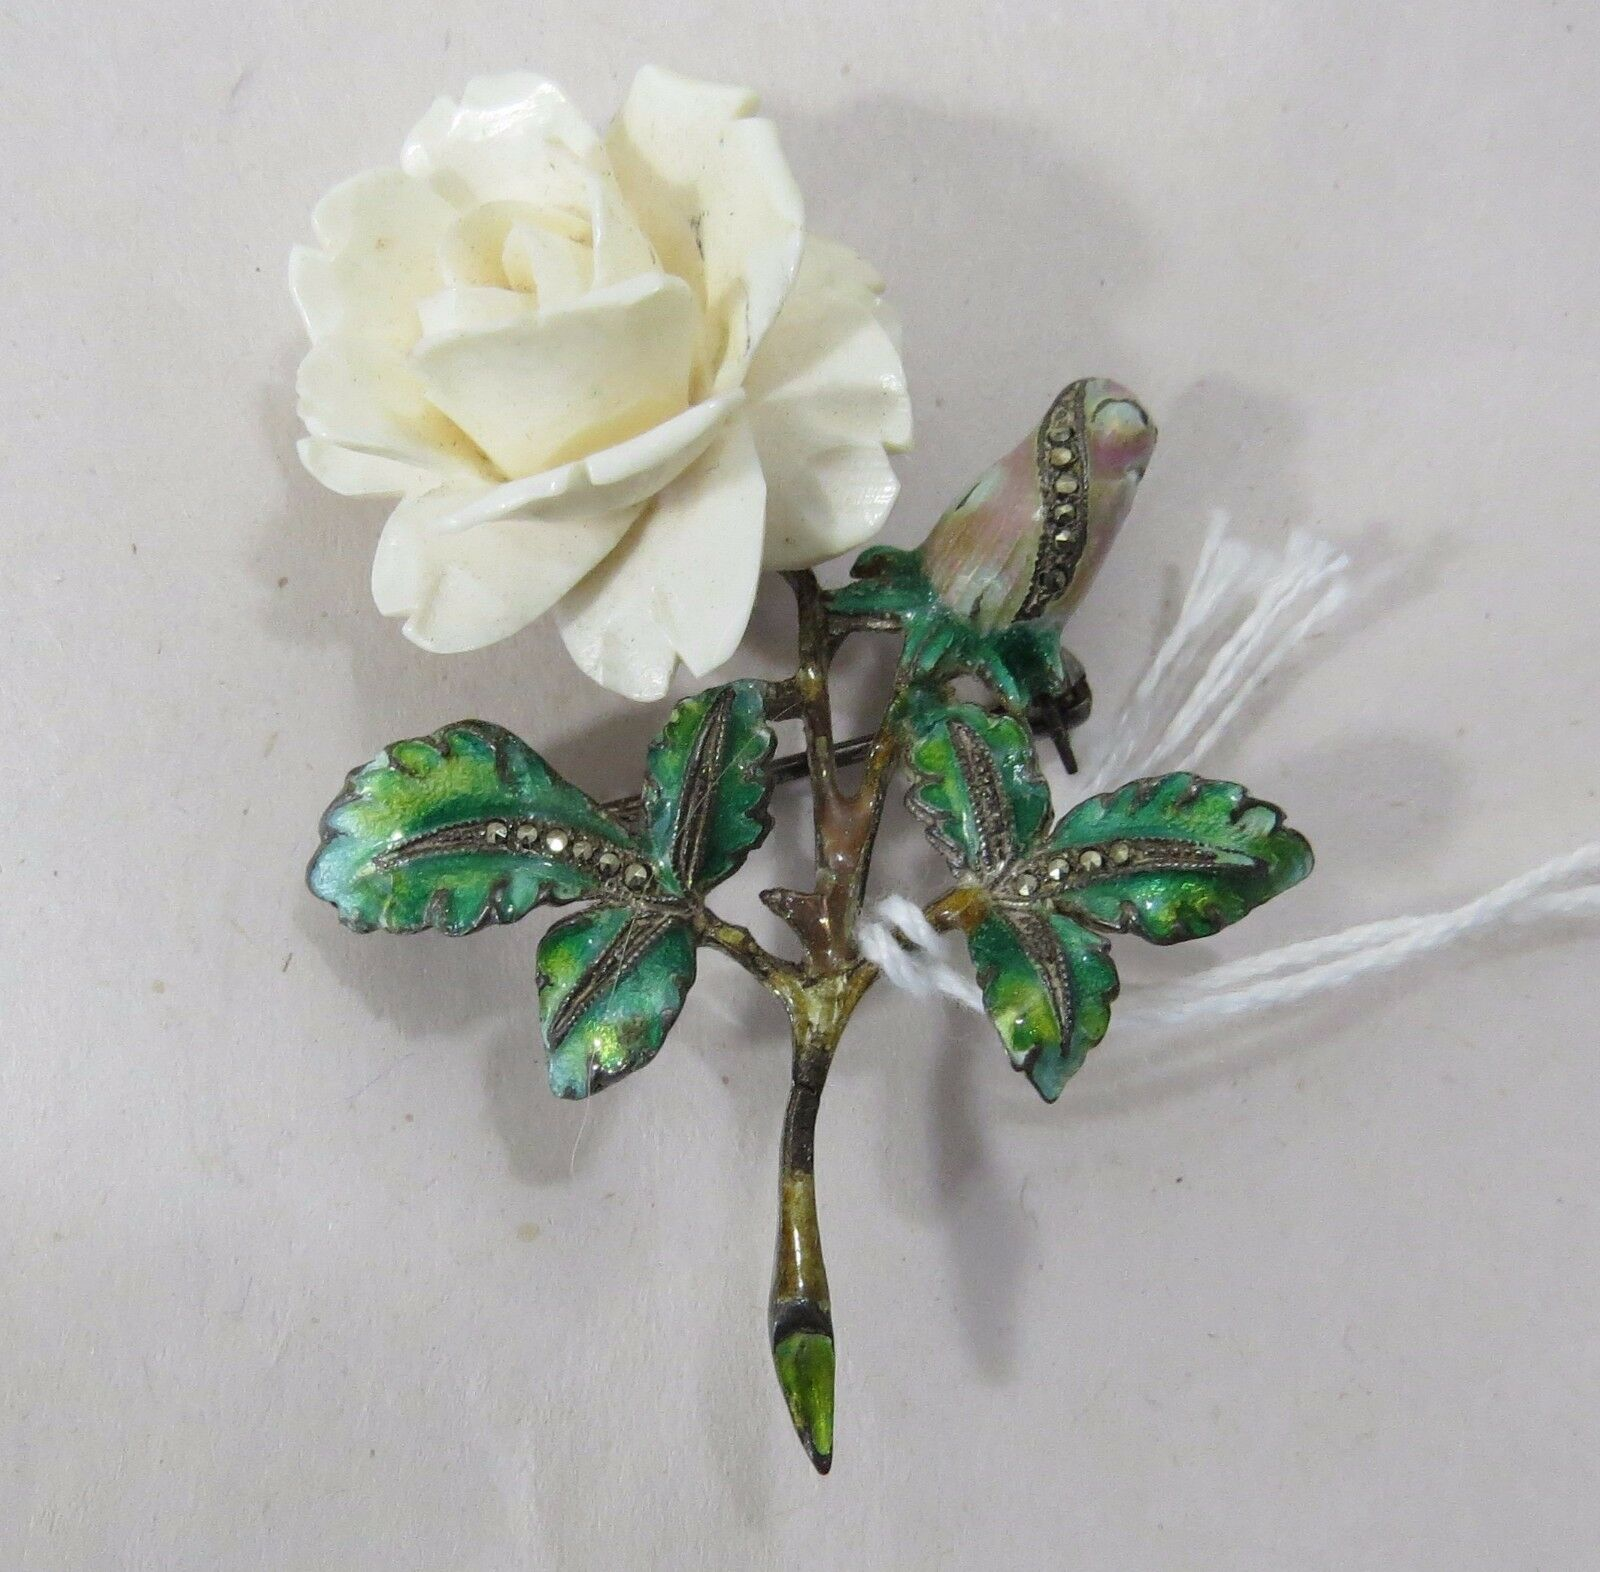 Vintage White Rose Brooch - Sterling Silver W/ Painted Leaves White Flower - $69.95